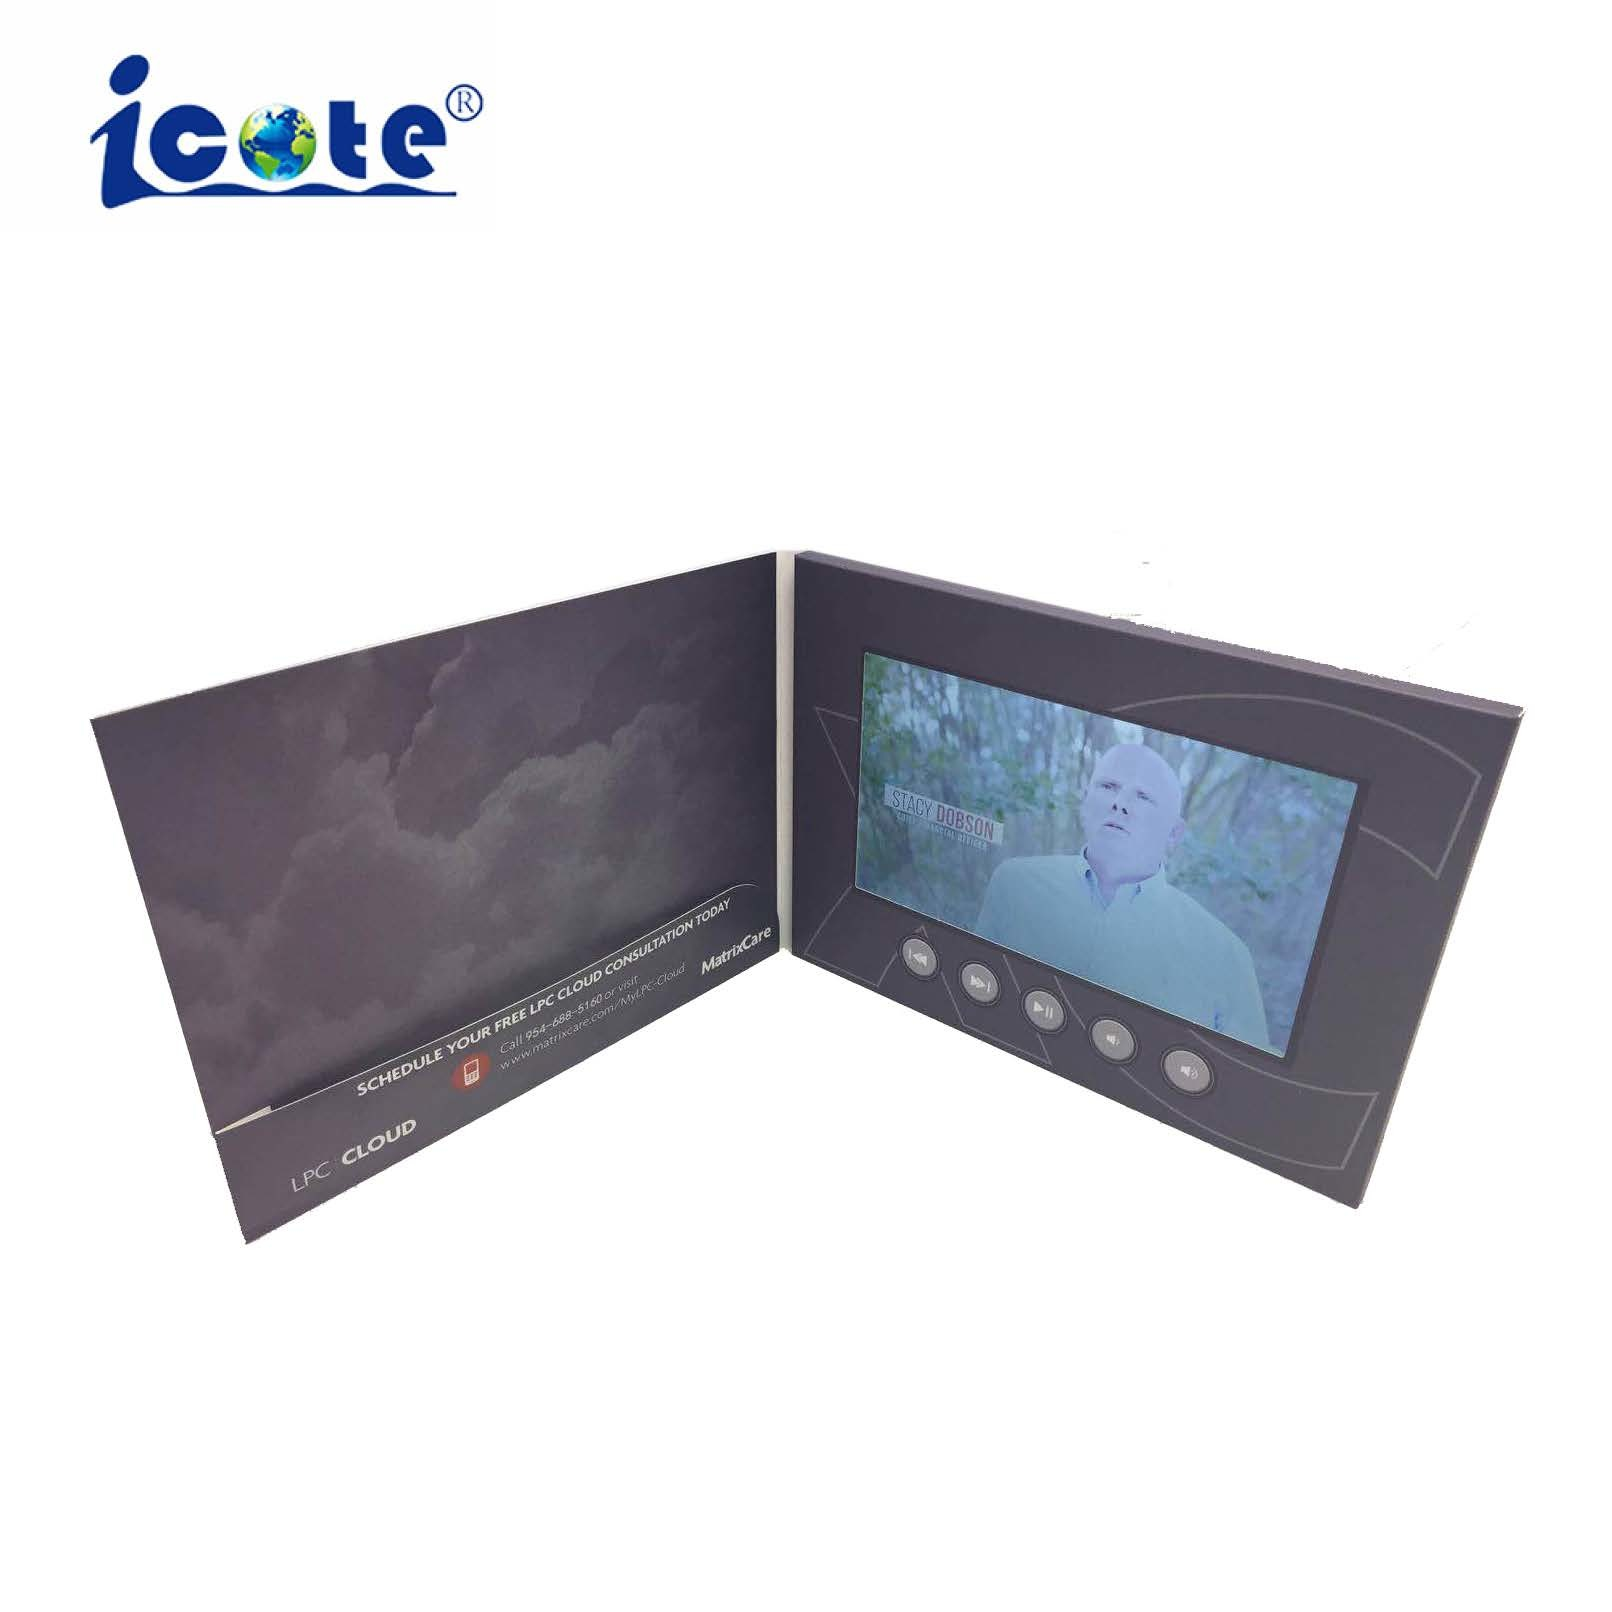 [Hot Item] Paper Craft LCD Video Brochure Kits Video Card for Gifts